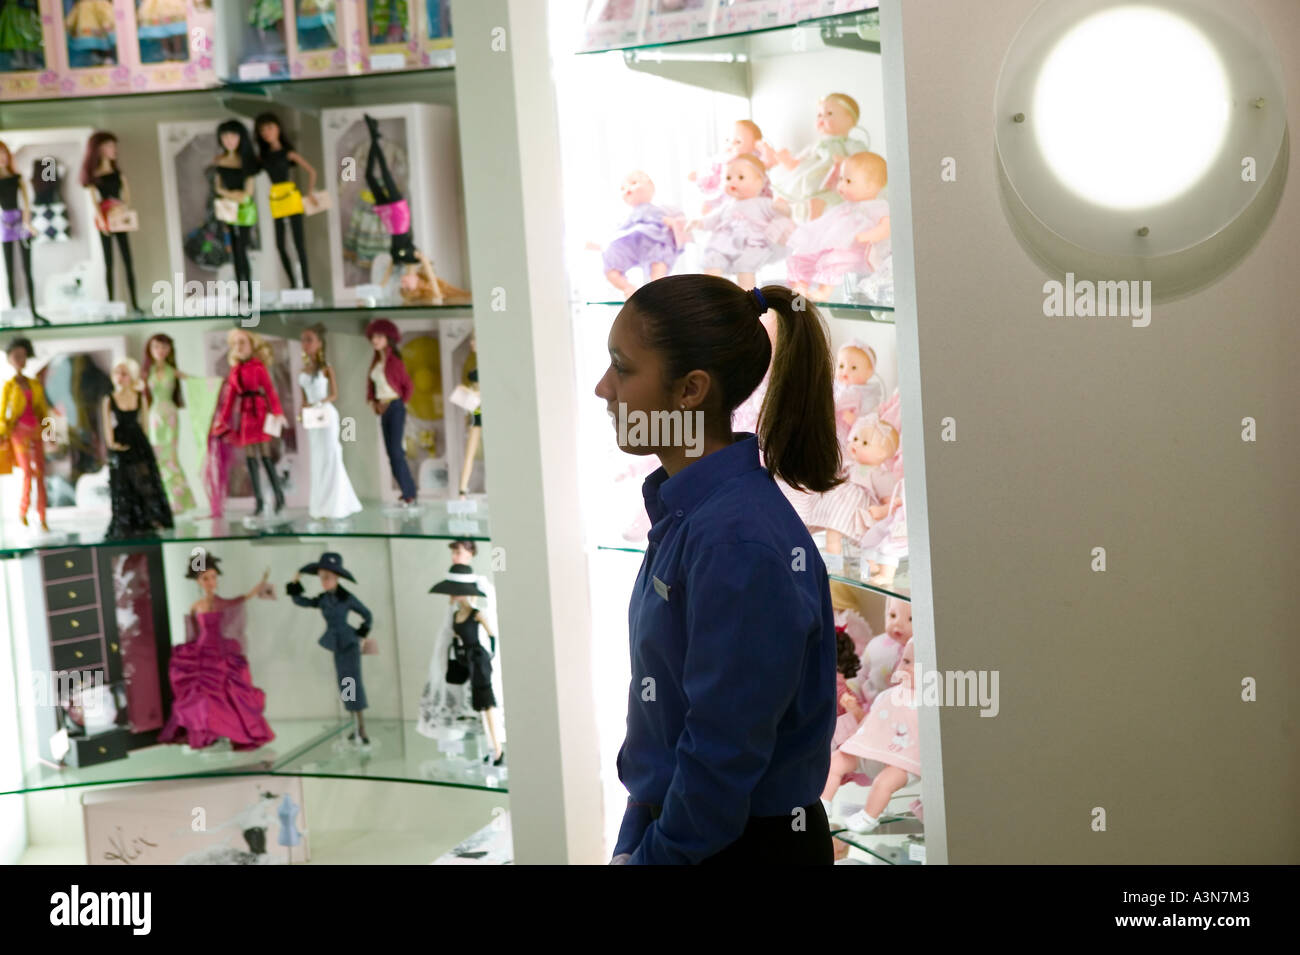 A salesperson stands by a doll display at the fao schwarz toy a salesperson stands by a doll display at the fao schwarz toy store on 5th avenue in new york city ny usa november 2004 sciox Image collections